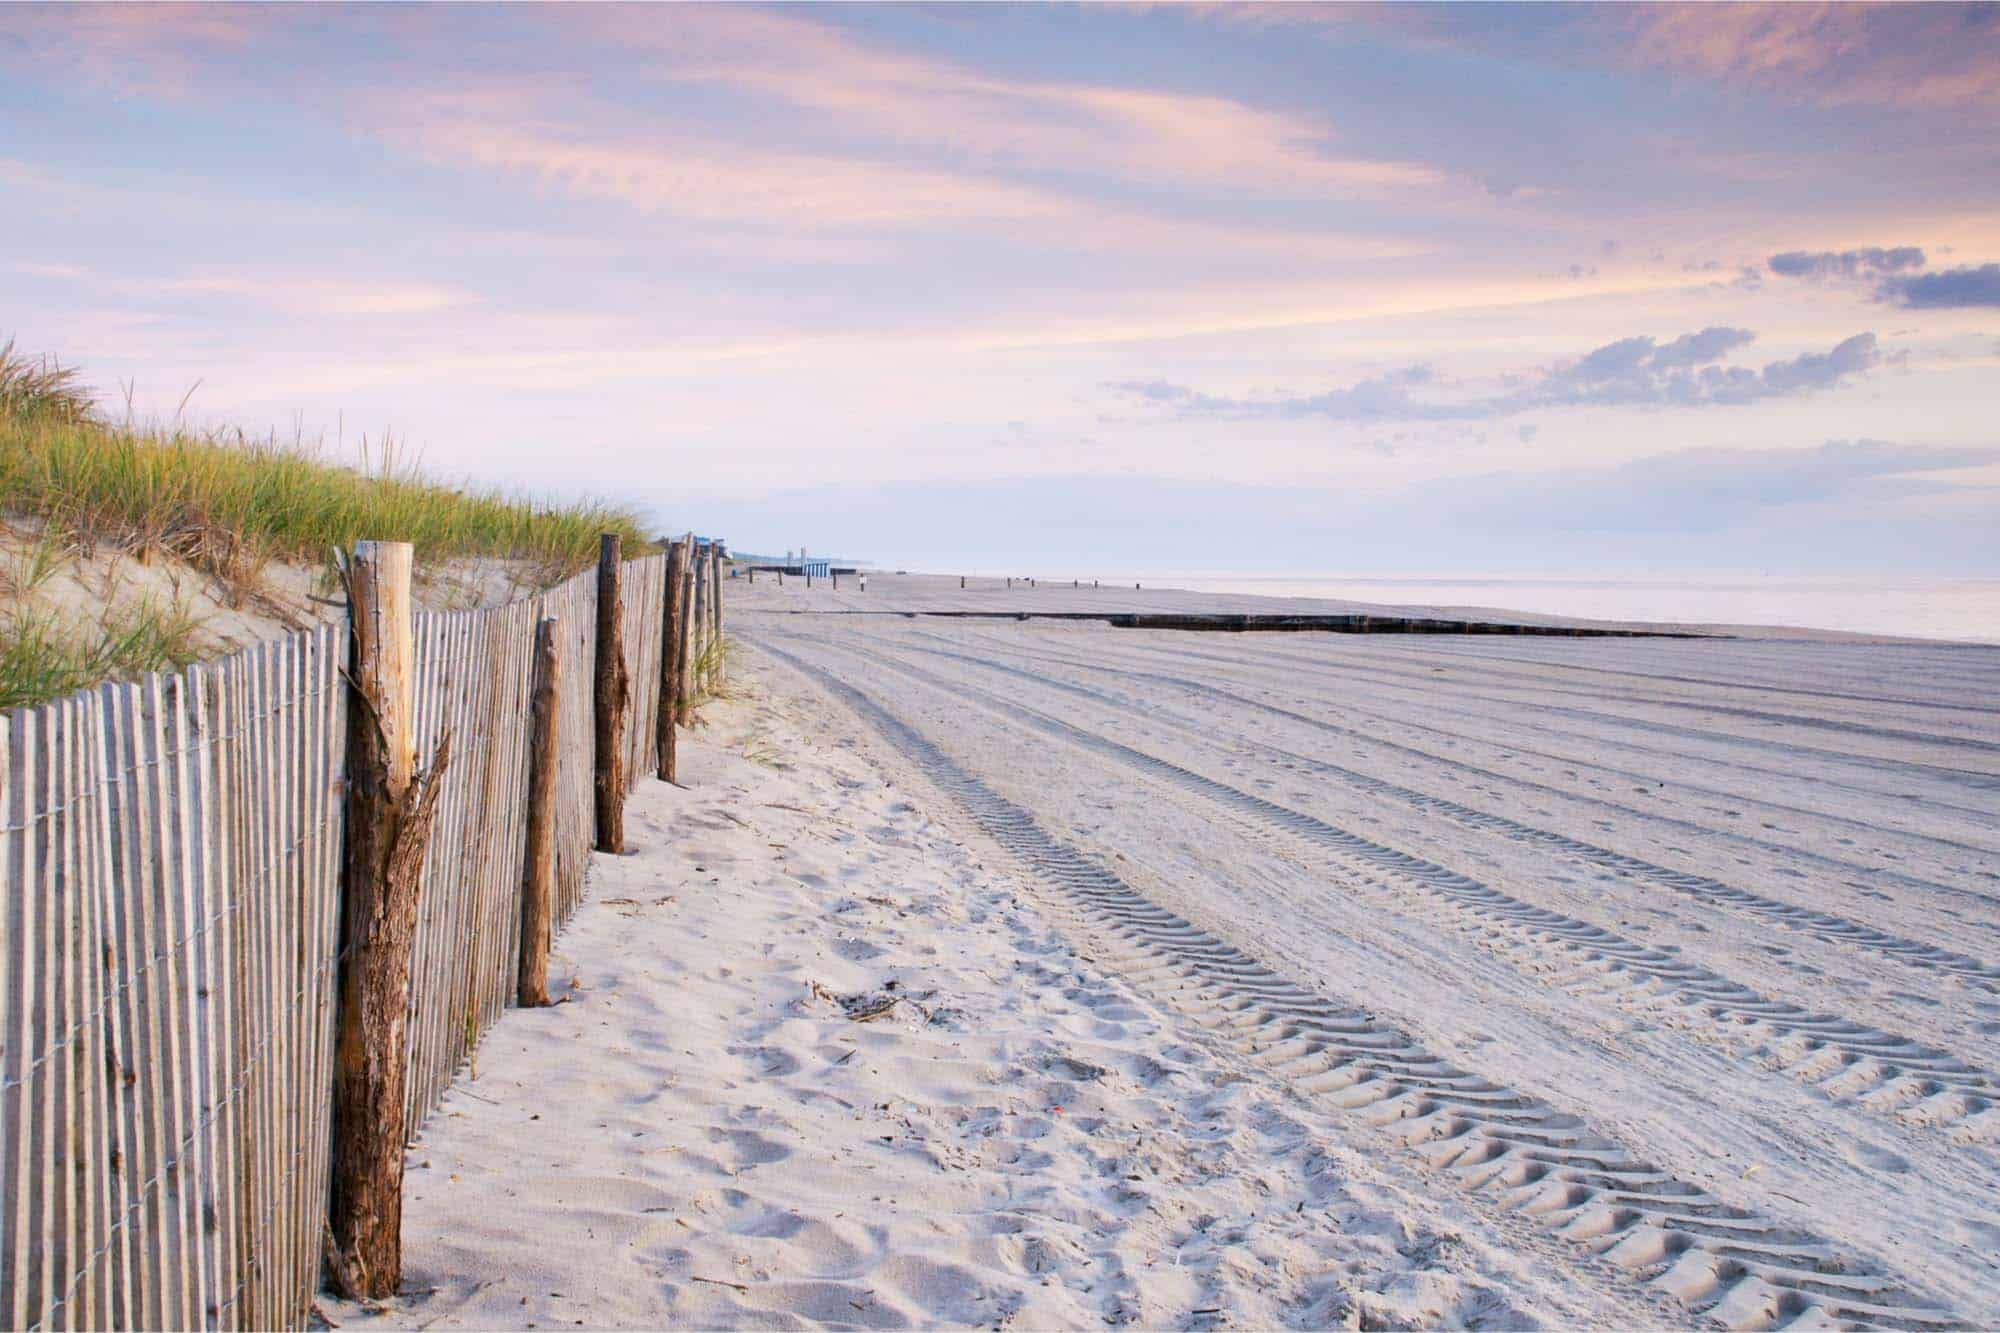 Fence and beach at sunset